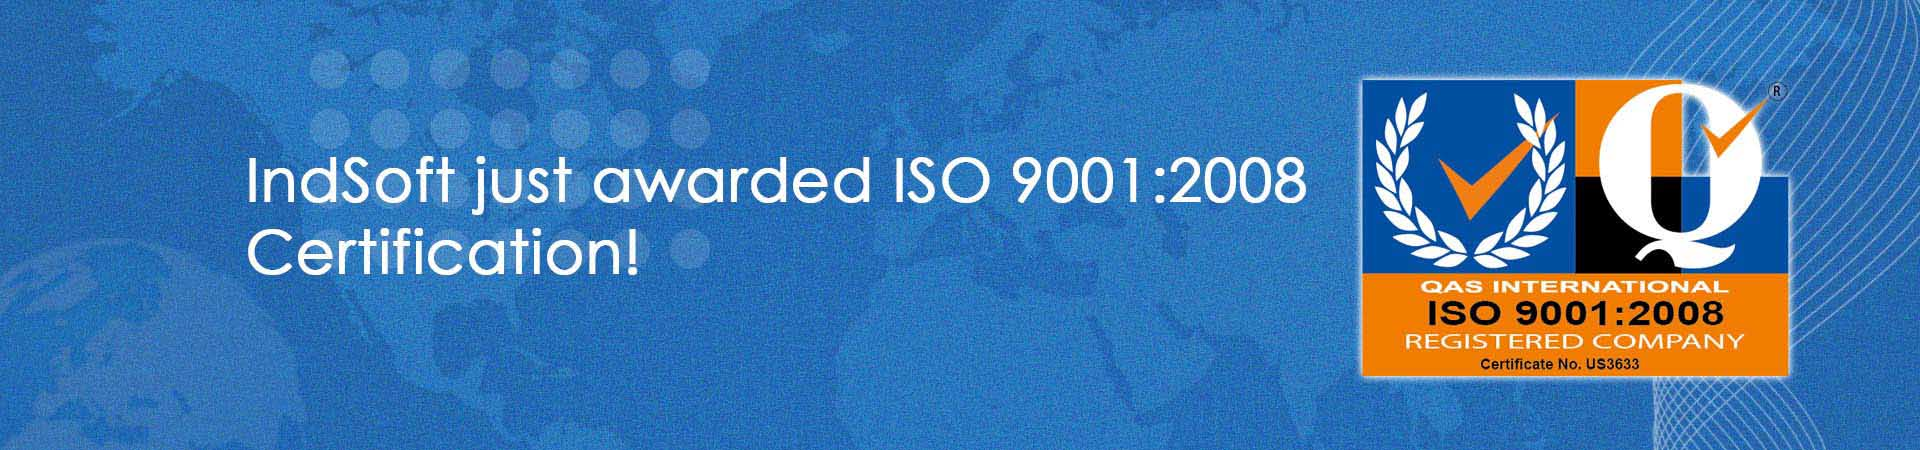 IndSoft just awarded ISO 9001:2008 Certification!